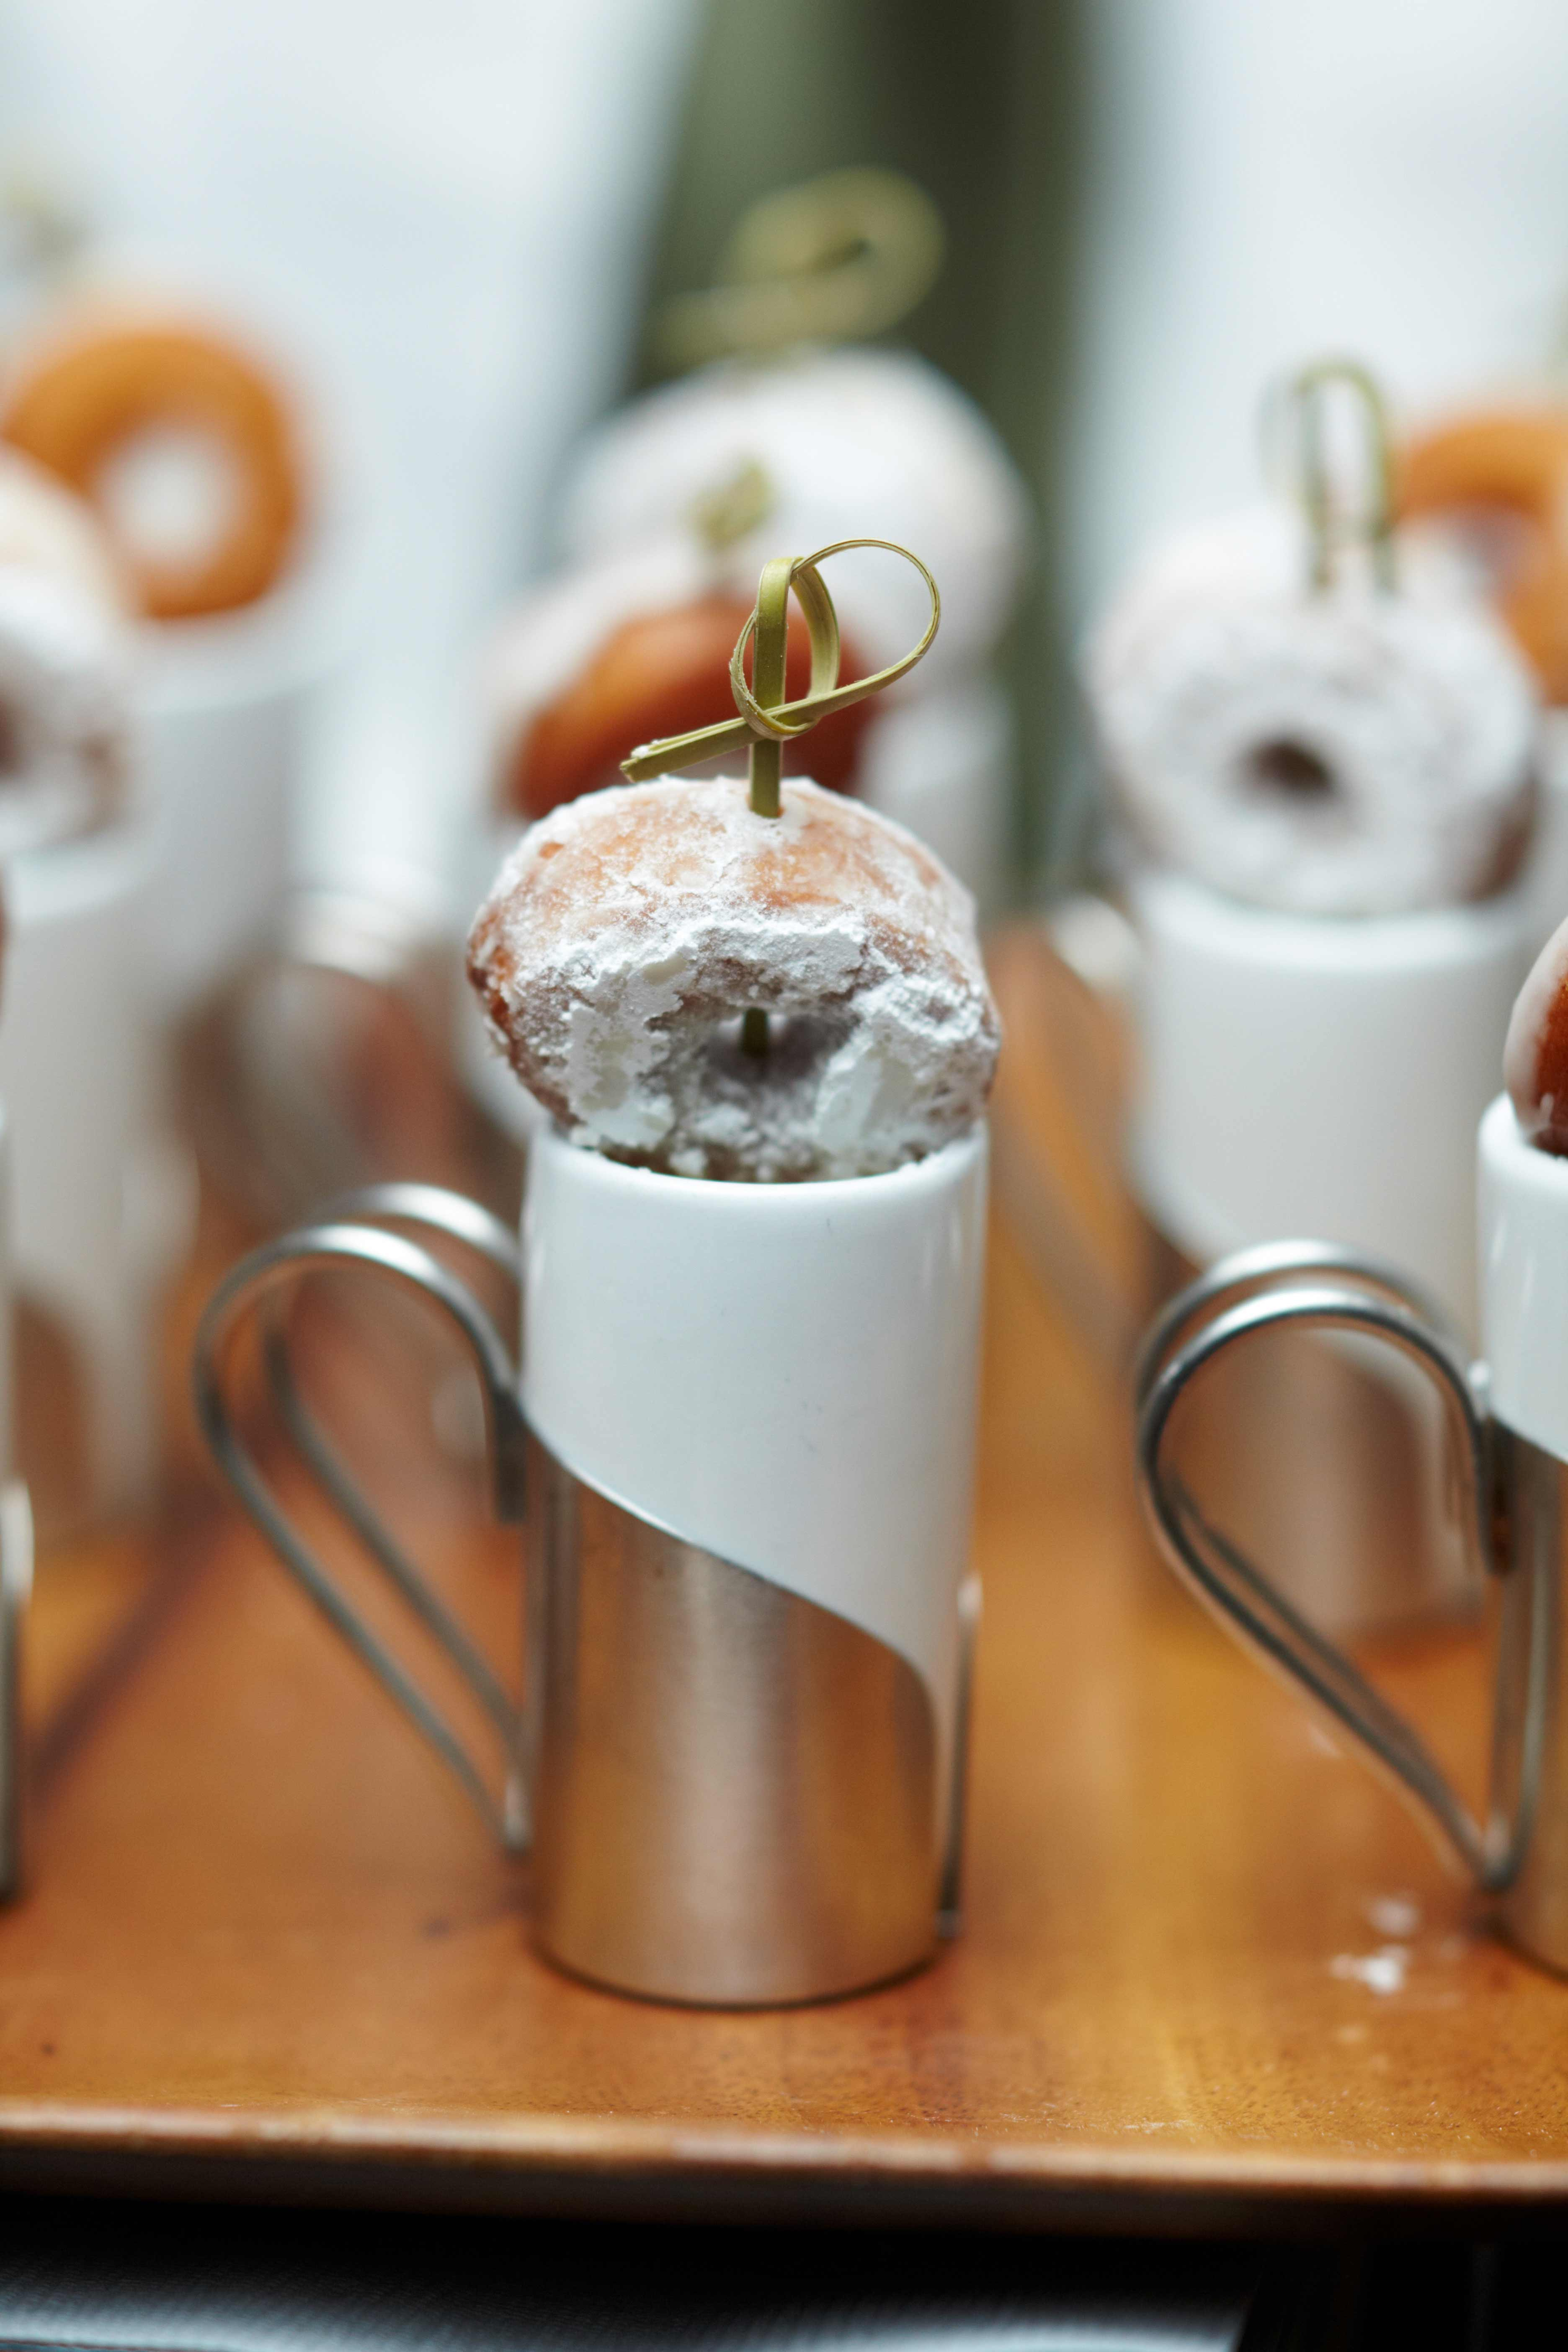 National donut day small shooter of coffee or milk with donut on top mini doughnut dessert ideas